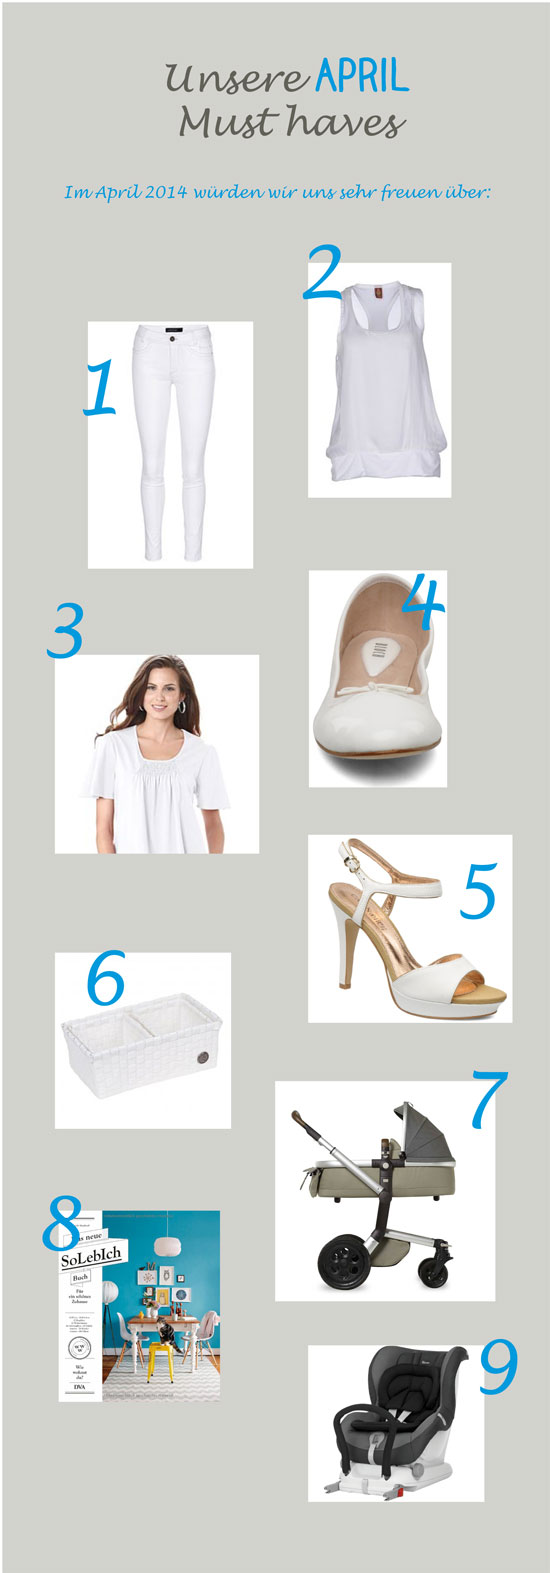 April-2014-Must-haves